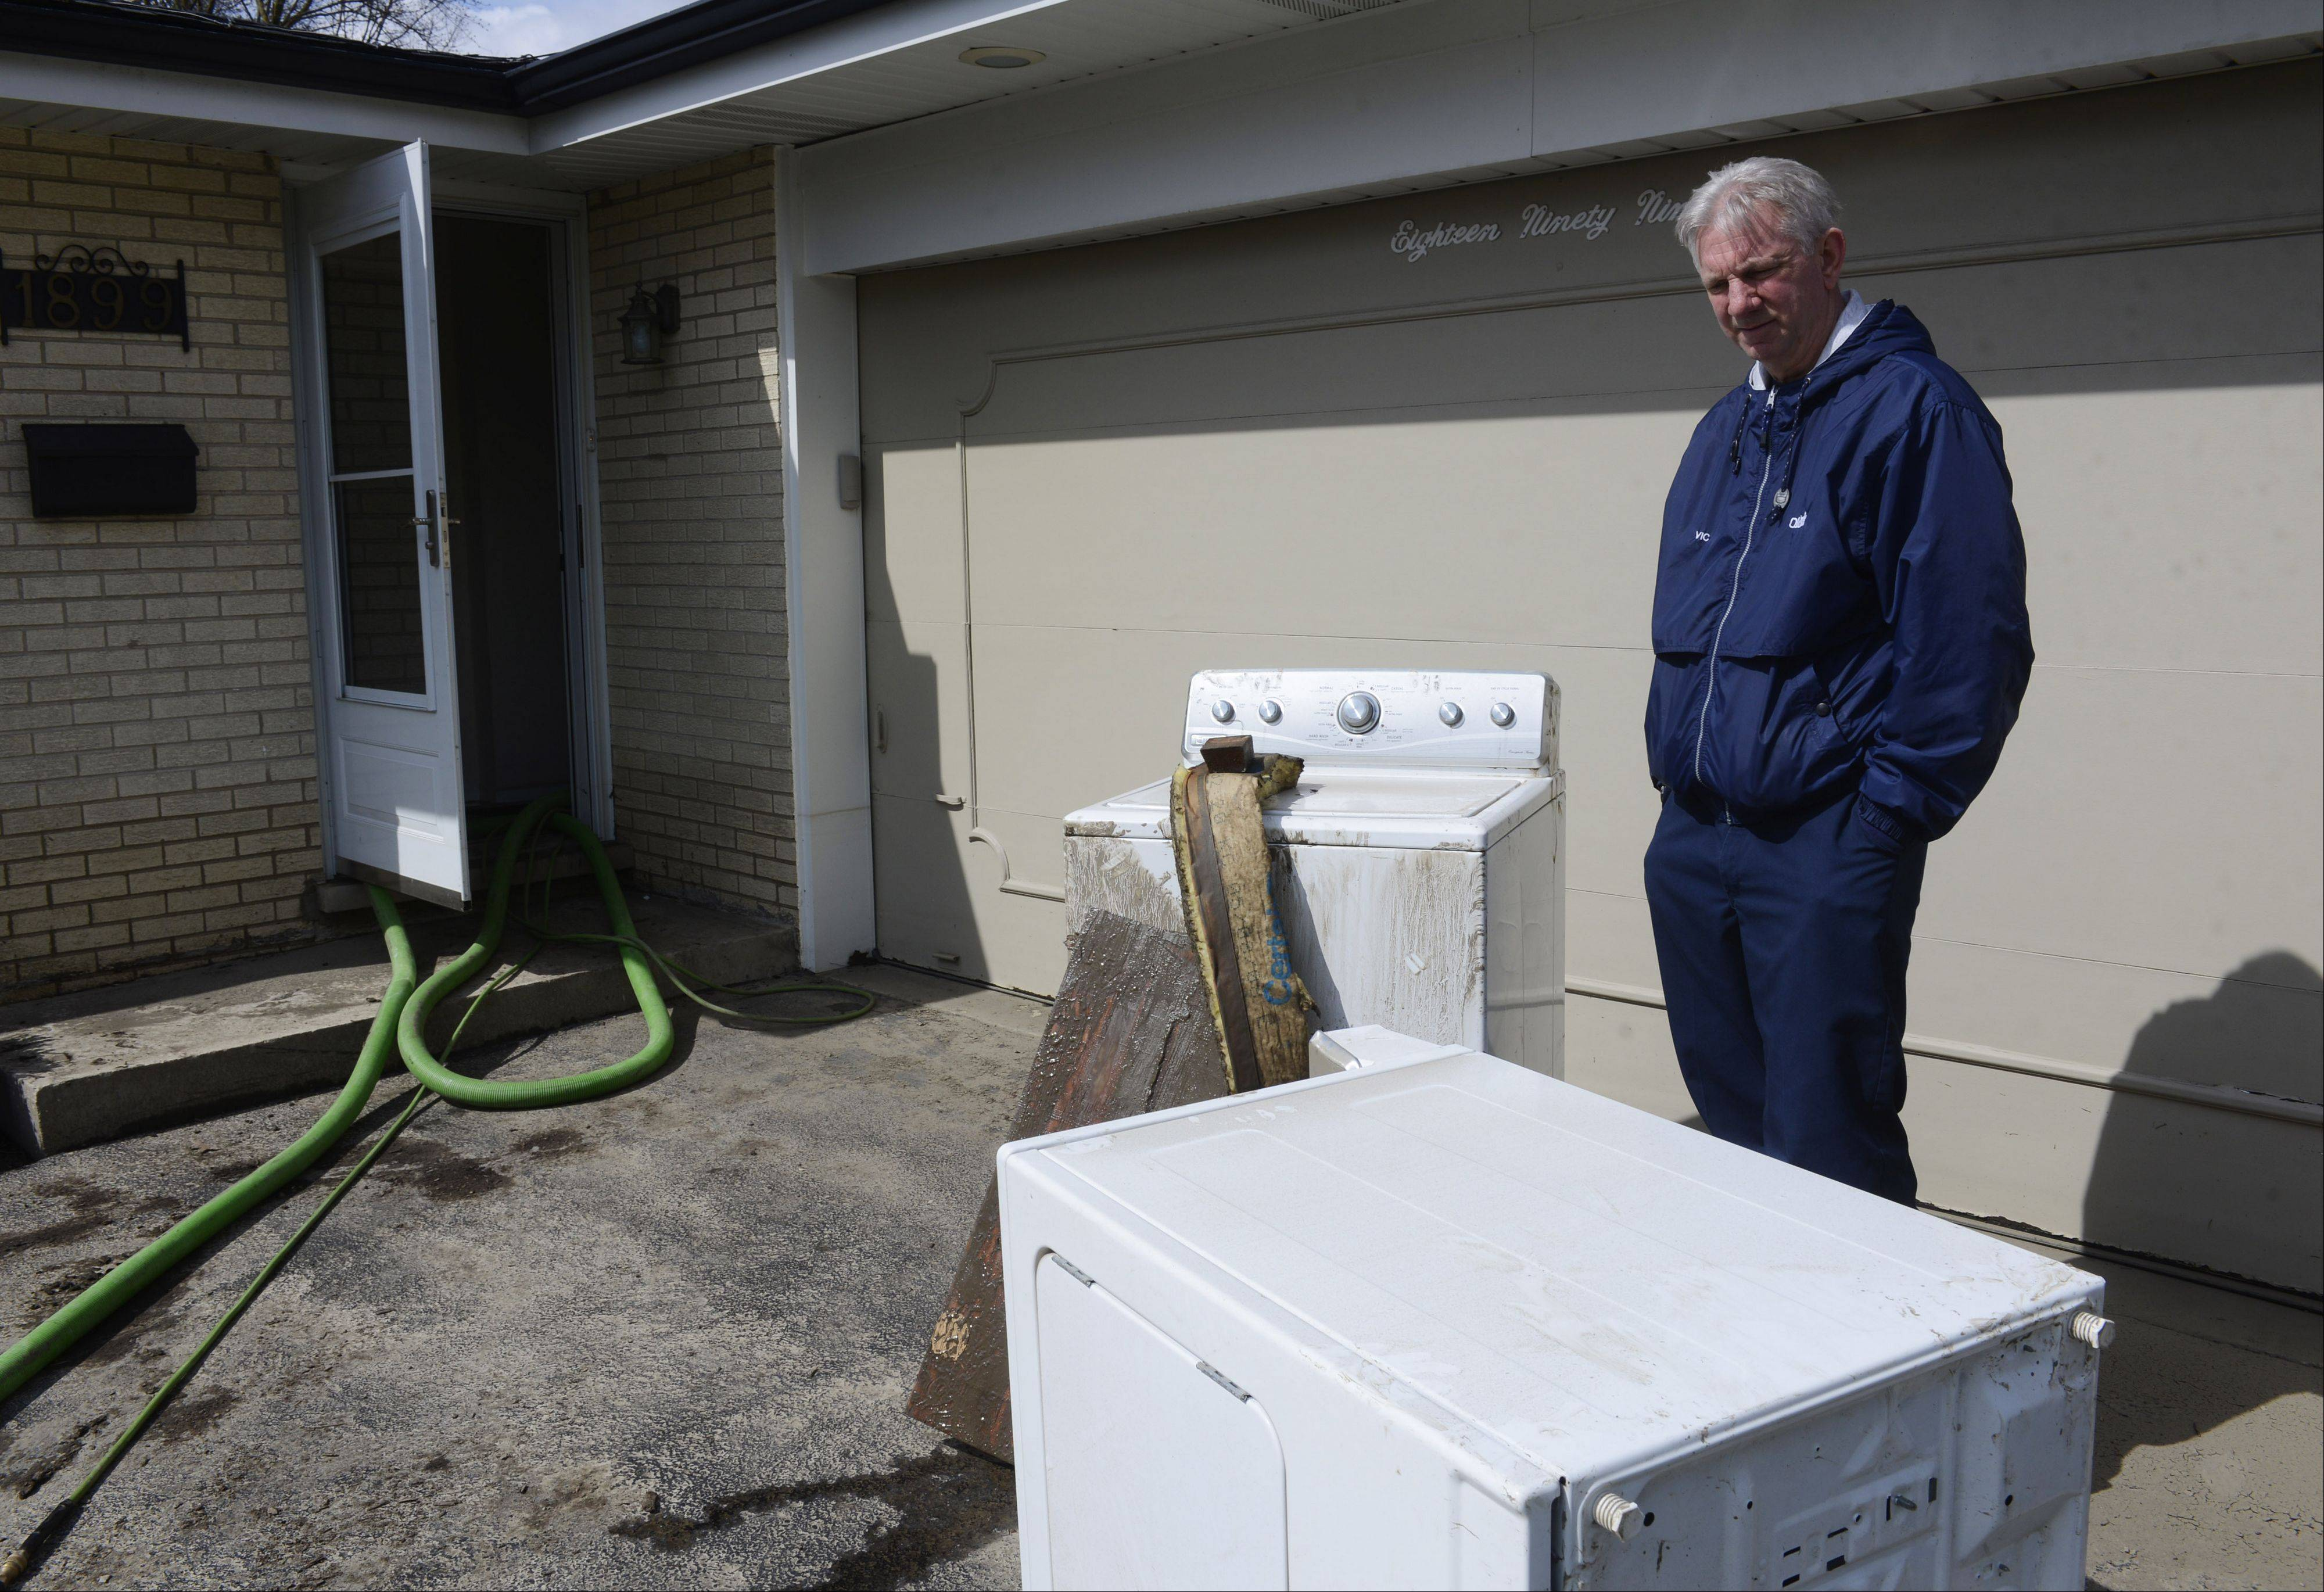 Vic Kamka, who lives on Big Bend Road in Des Plaines, stands beside a washer and dryer that were purchased new in 2008, only to be destroyed in last week's Des Plaines River flood.